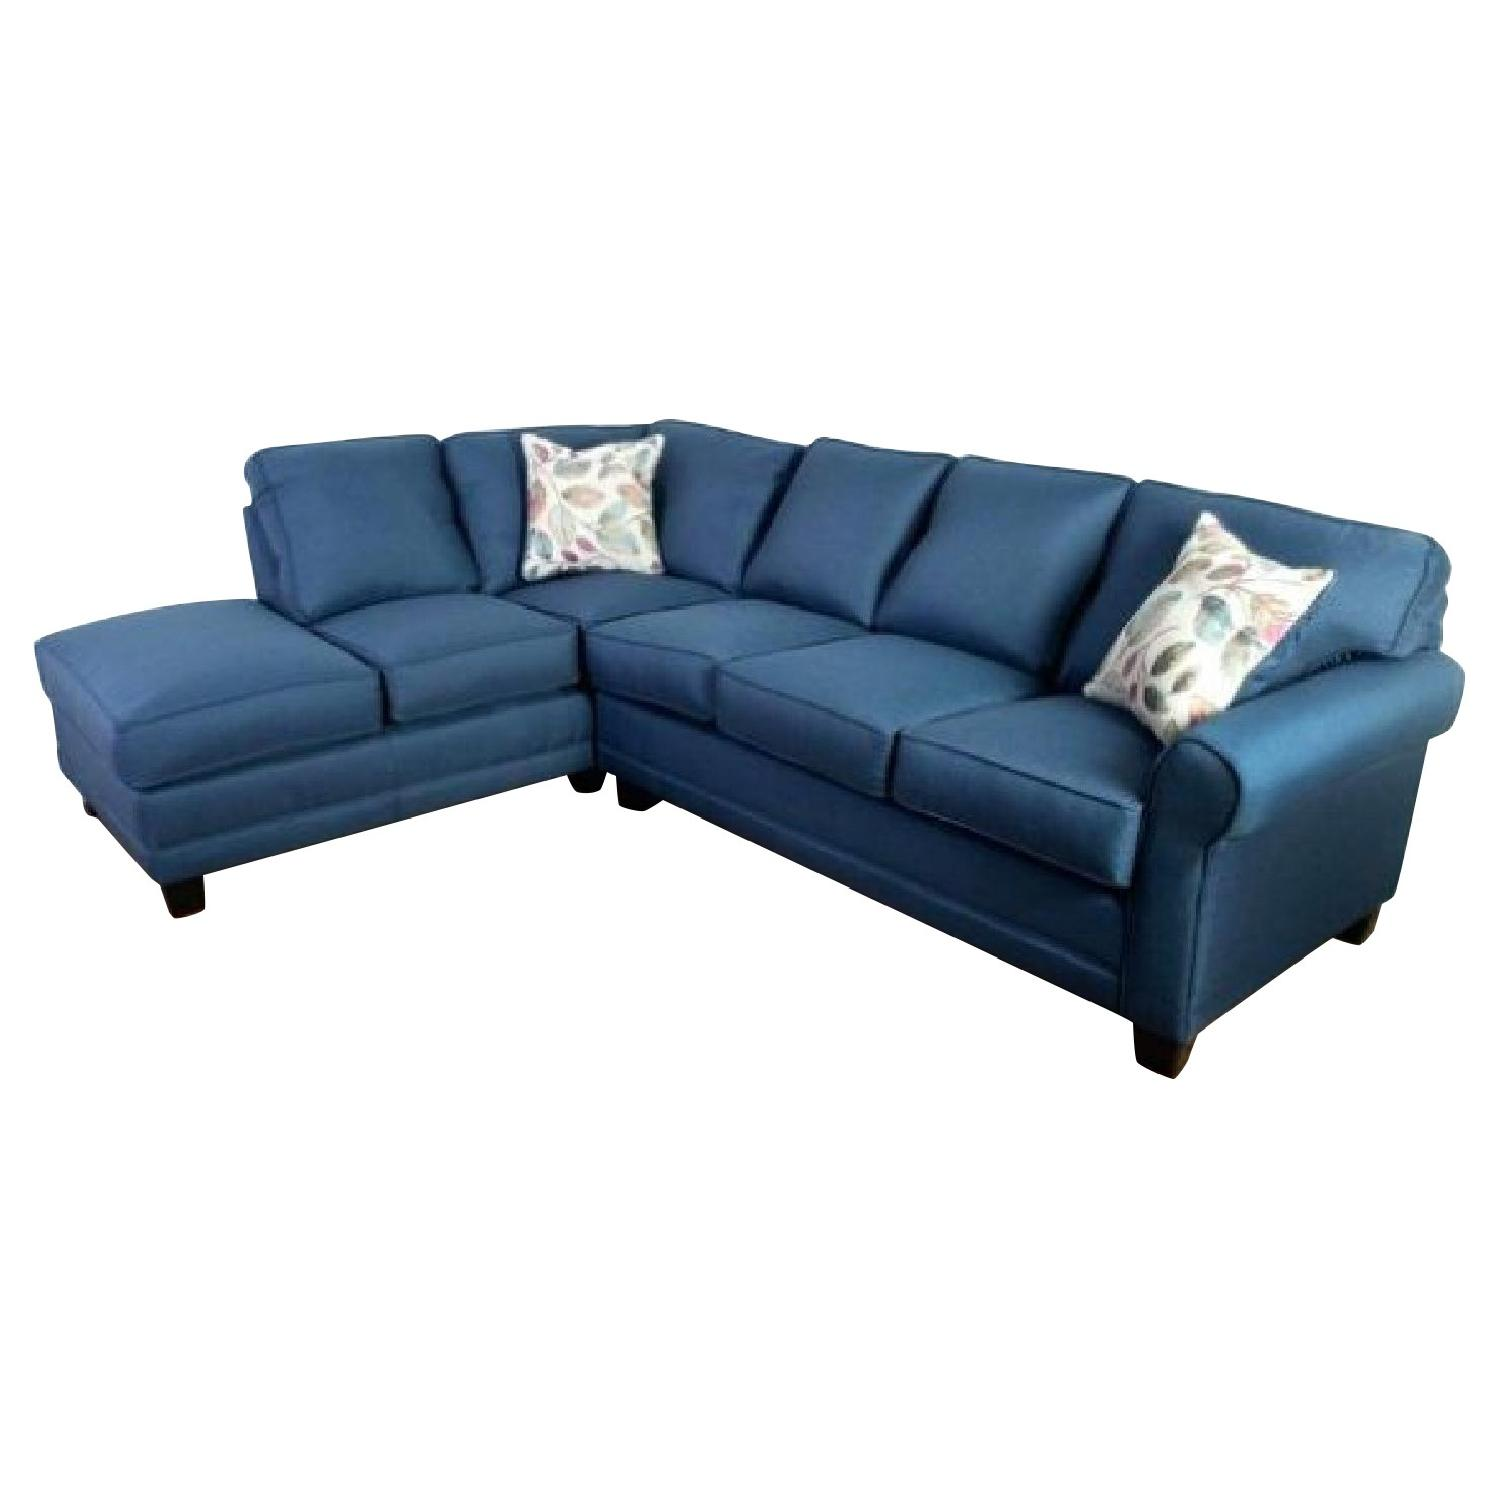 Galena Blue Sectional Sofa w/ Chaise - AptDeco